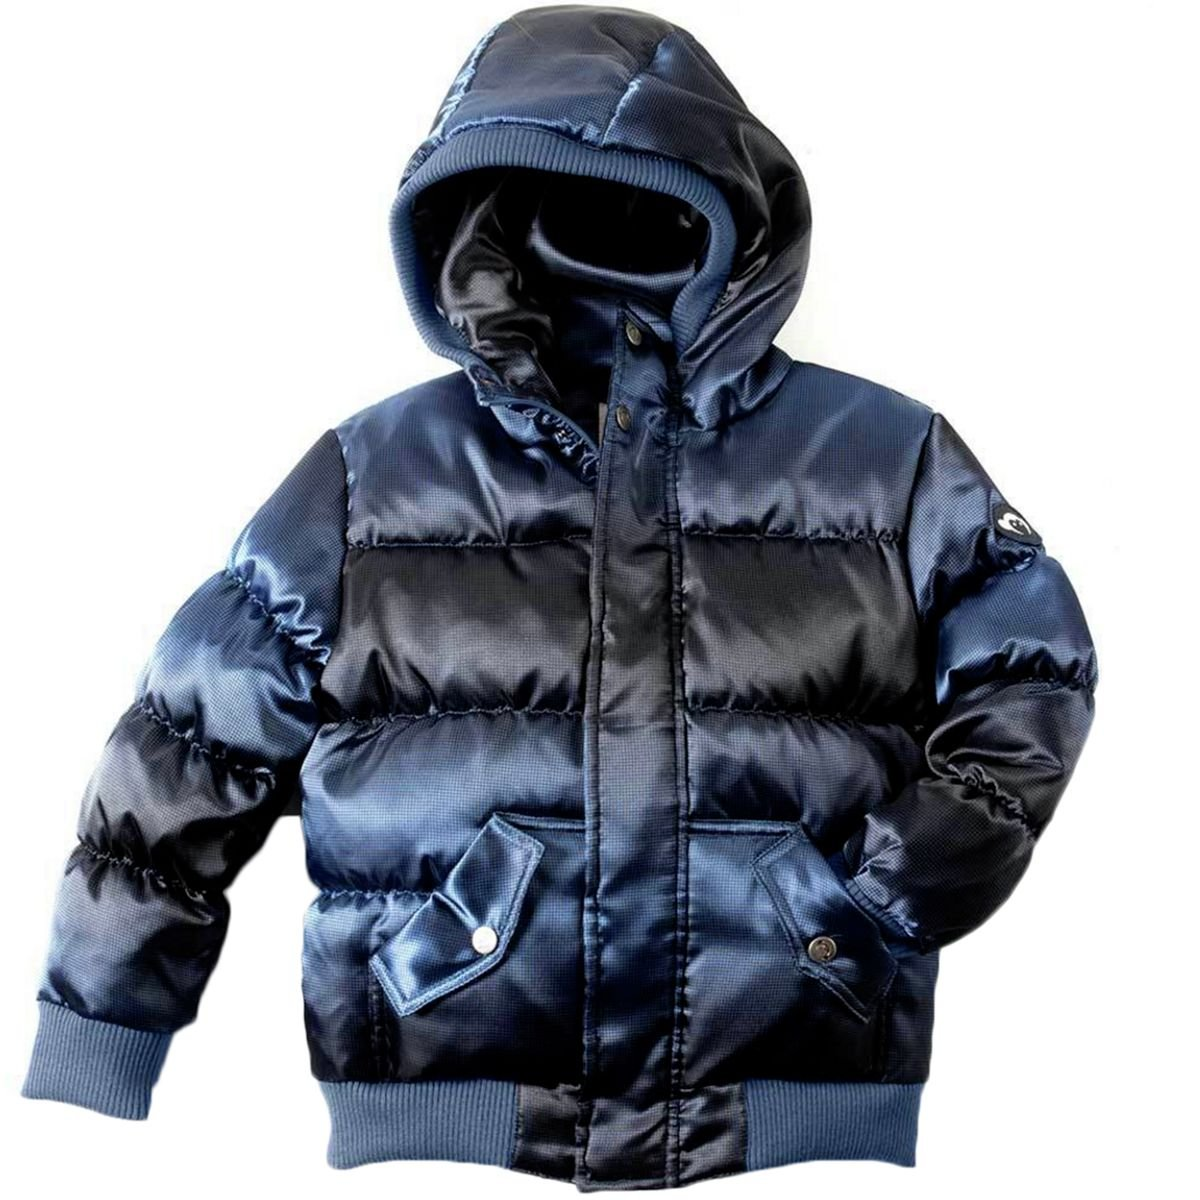 Appaman Toddler Boys' Puffy Coat, Blue Wave, 3T by Appaman